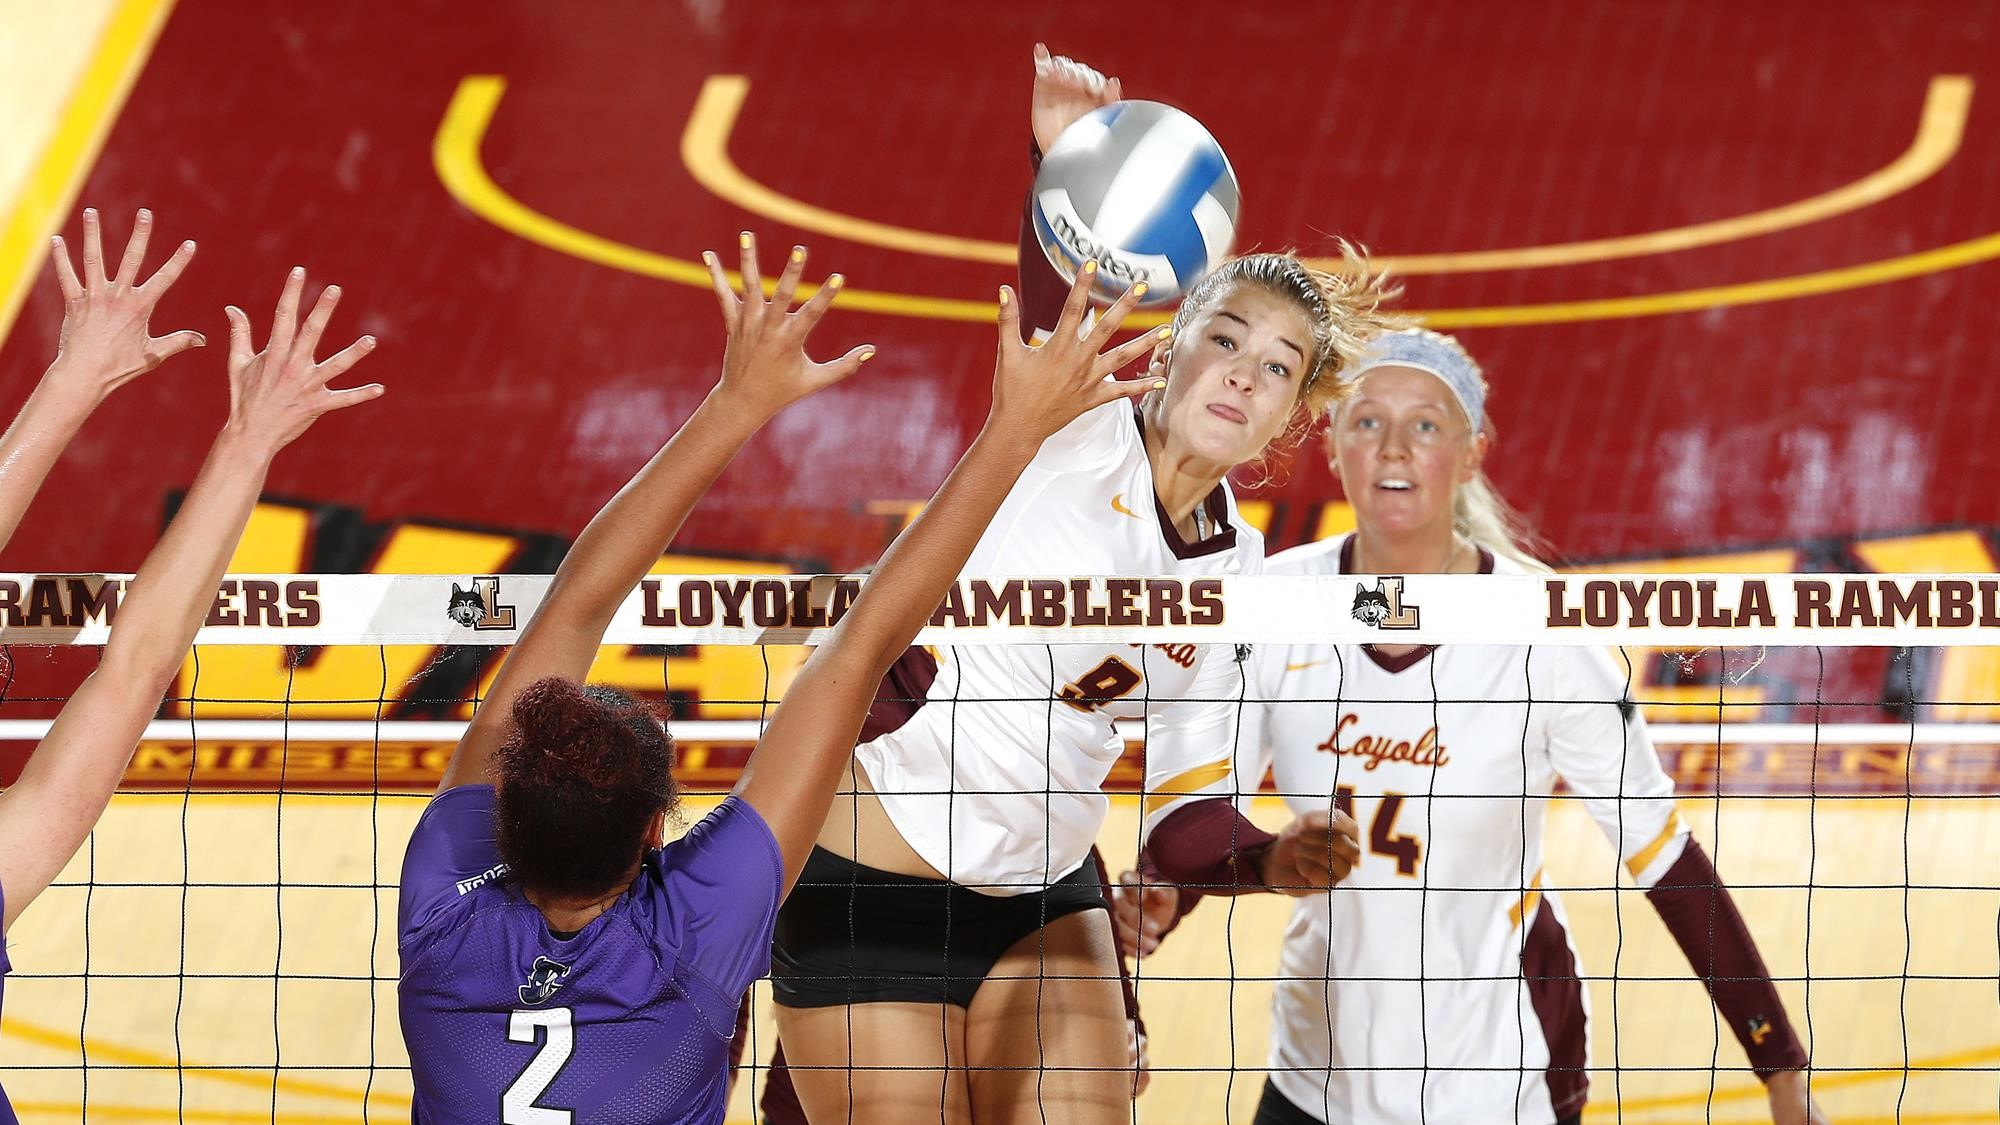 Former Rambler Maciagowski Signs Pro Contract To Play In Switzerland Loyola University Chicago Athletics